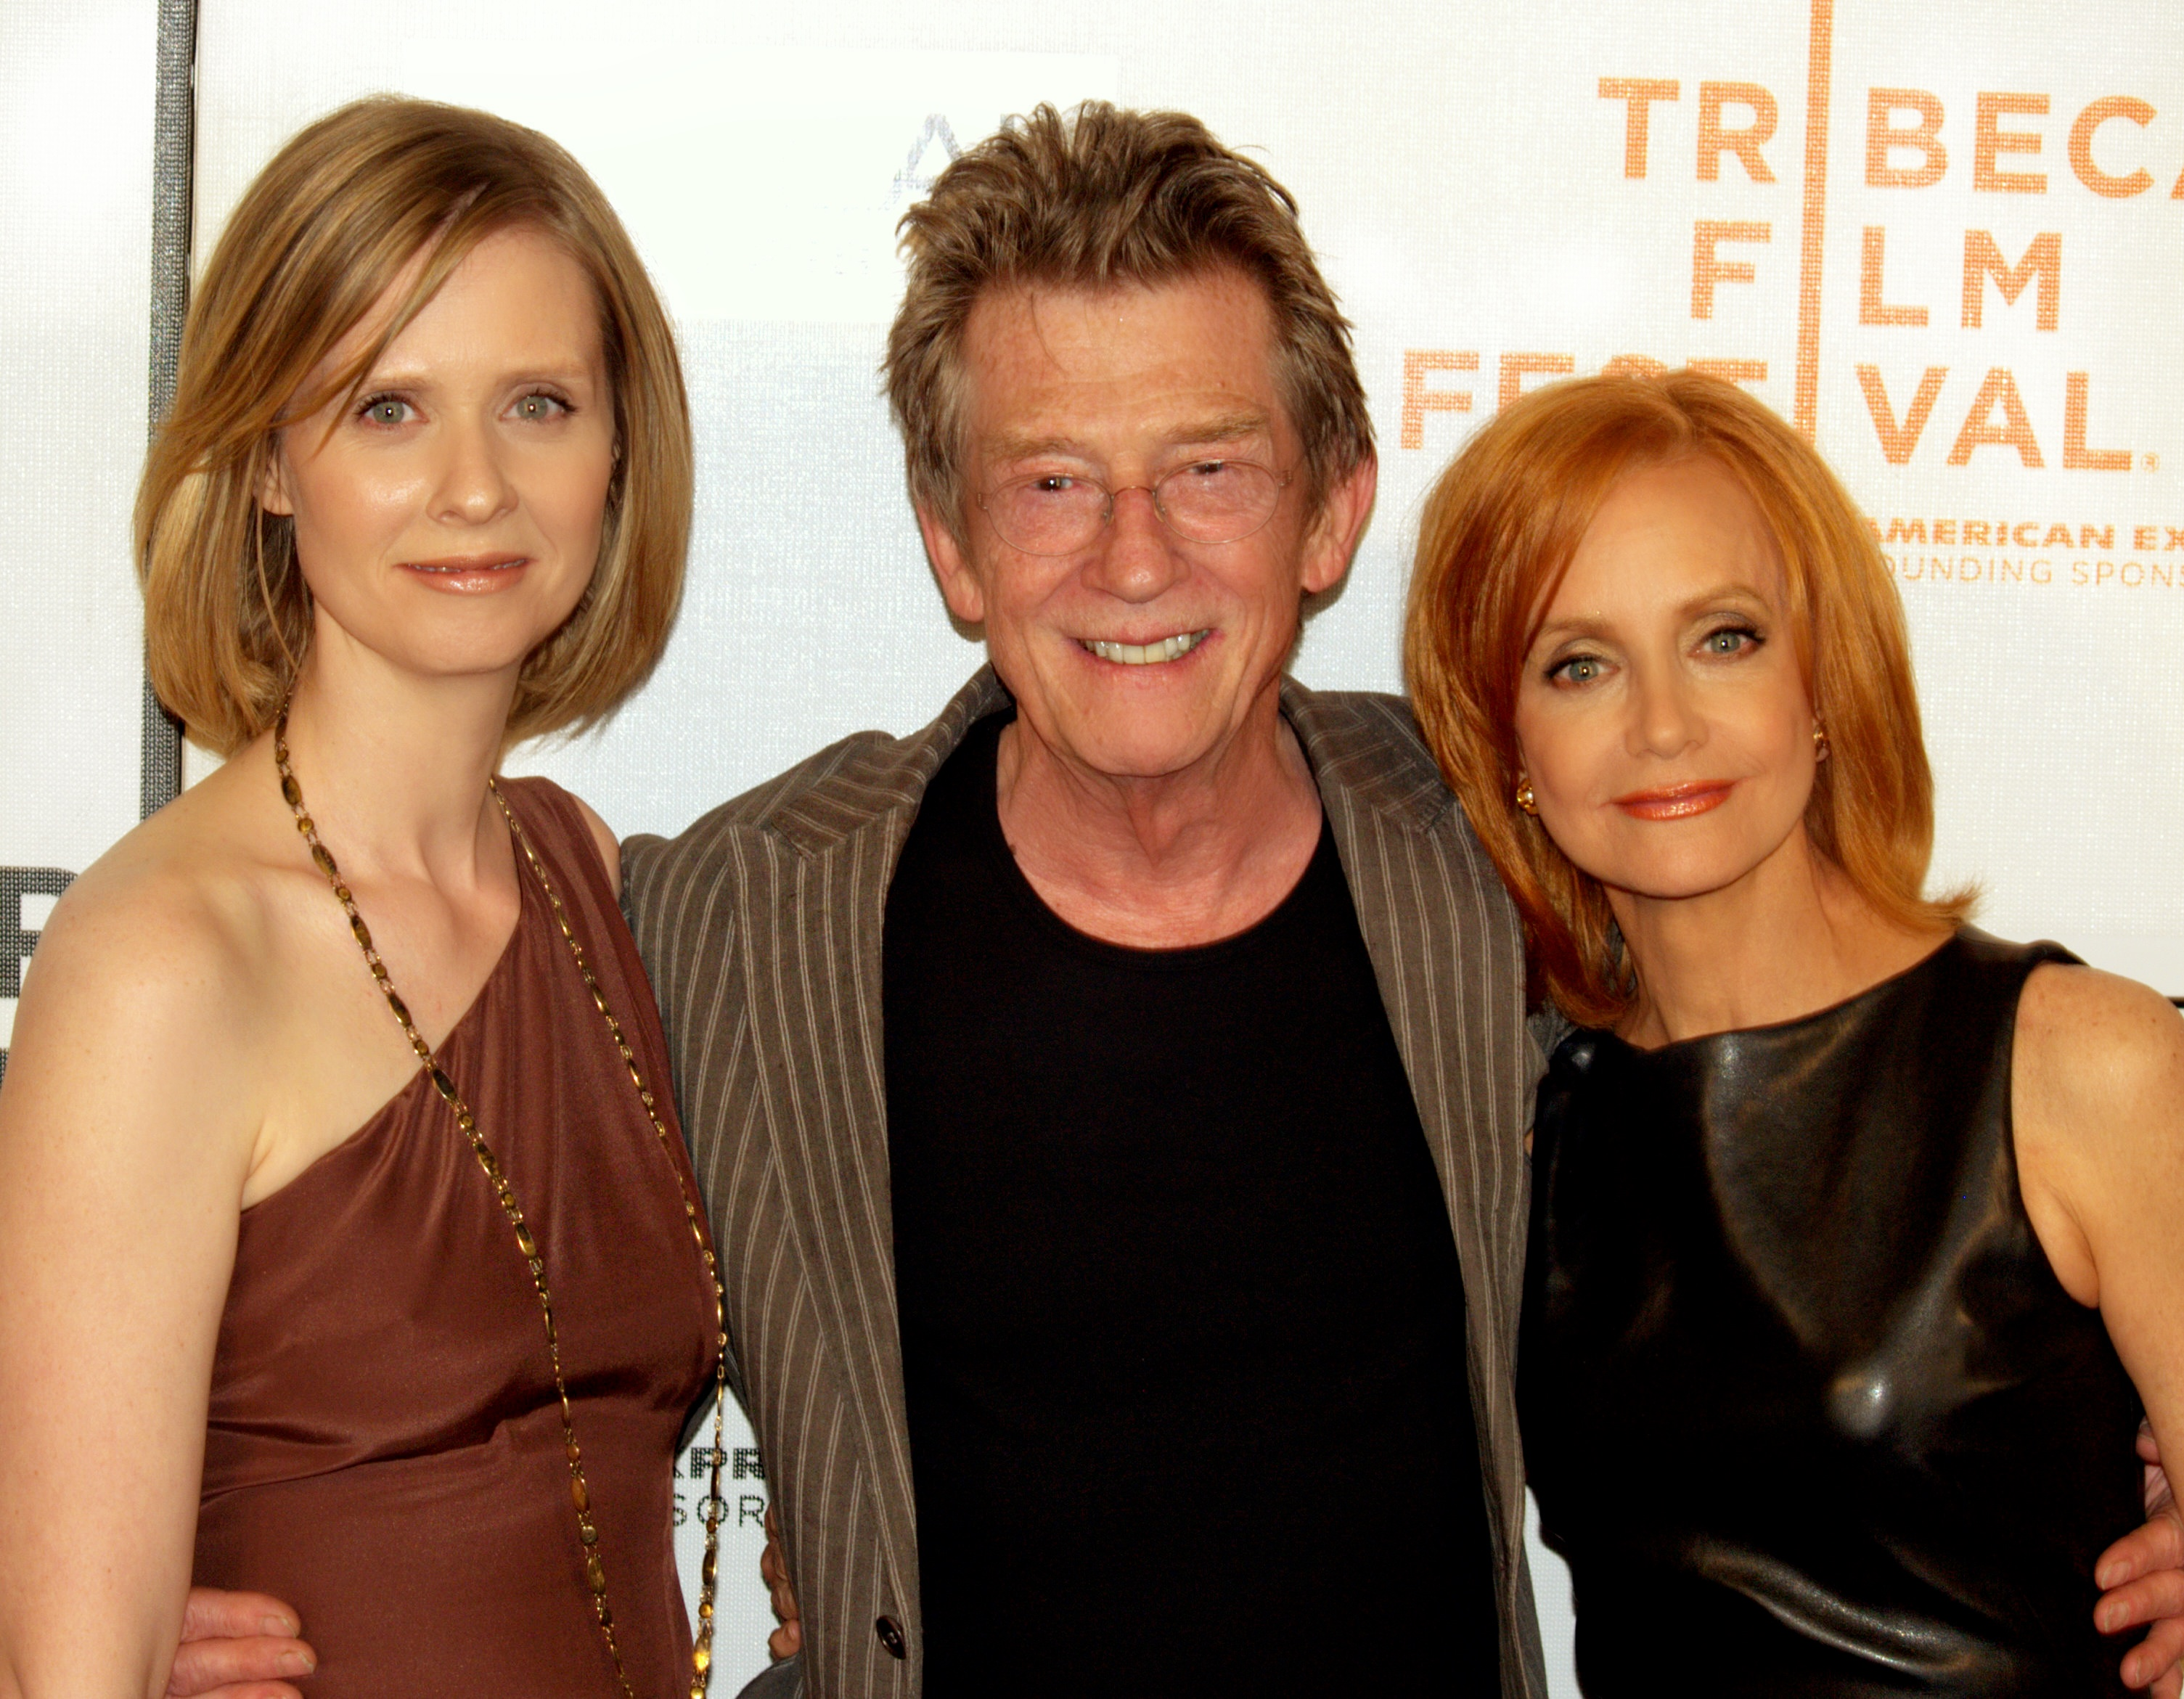 Cynthia Nixon, Hurt and Swoosie Kurtz in 2009.